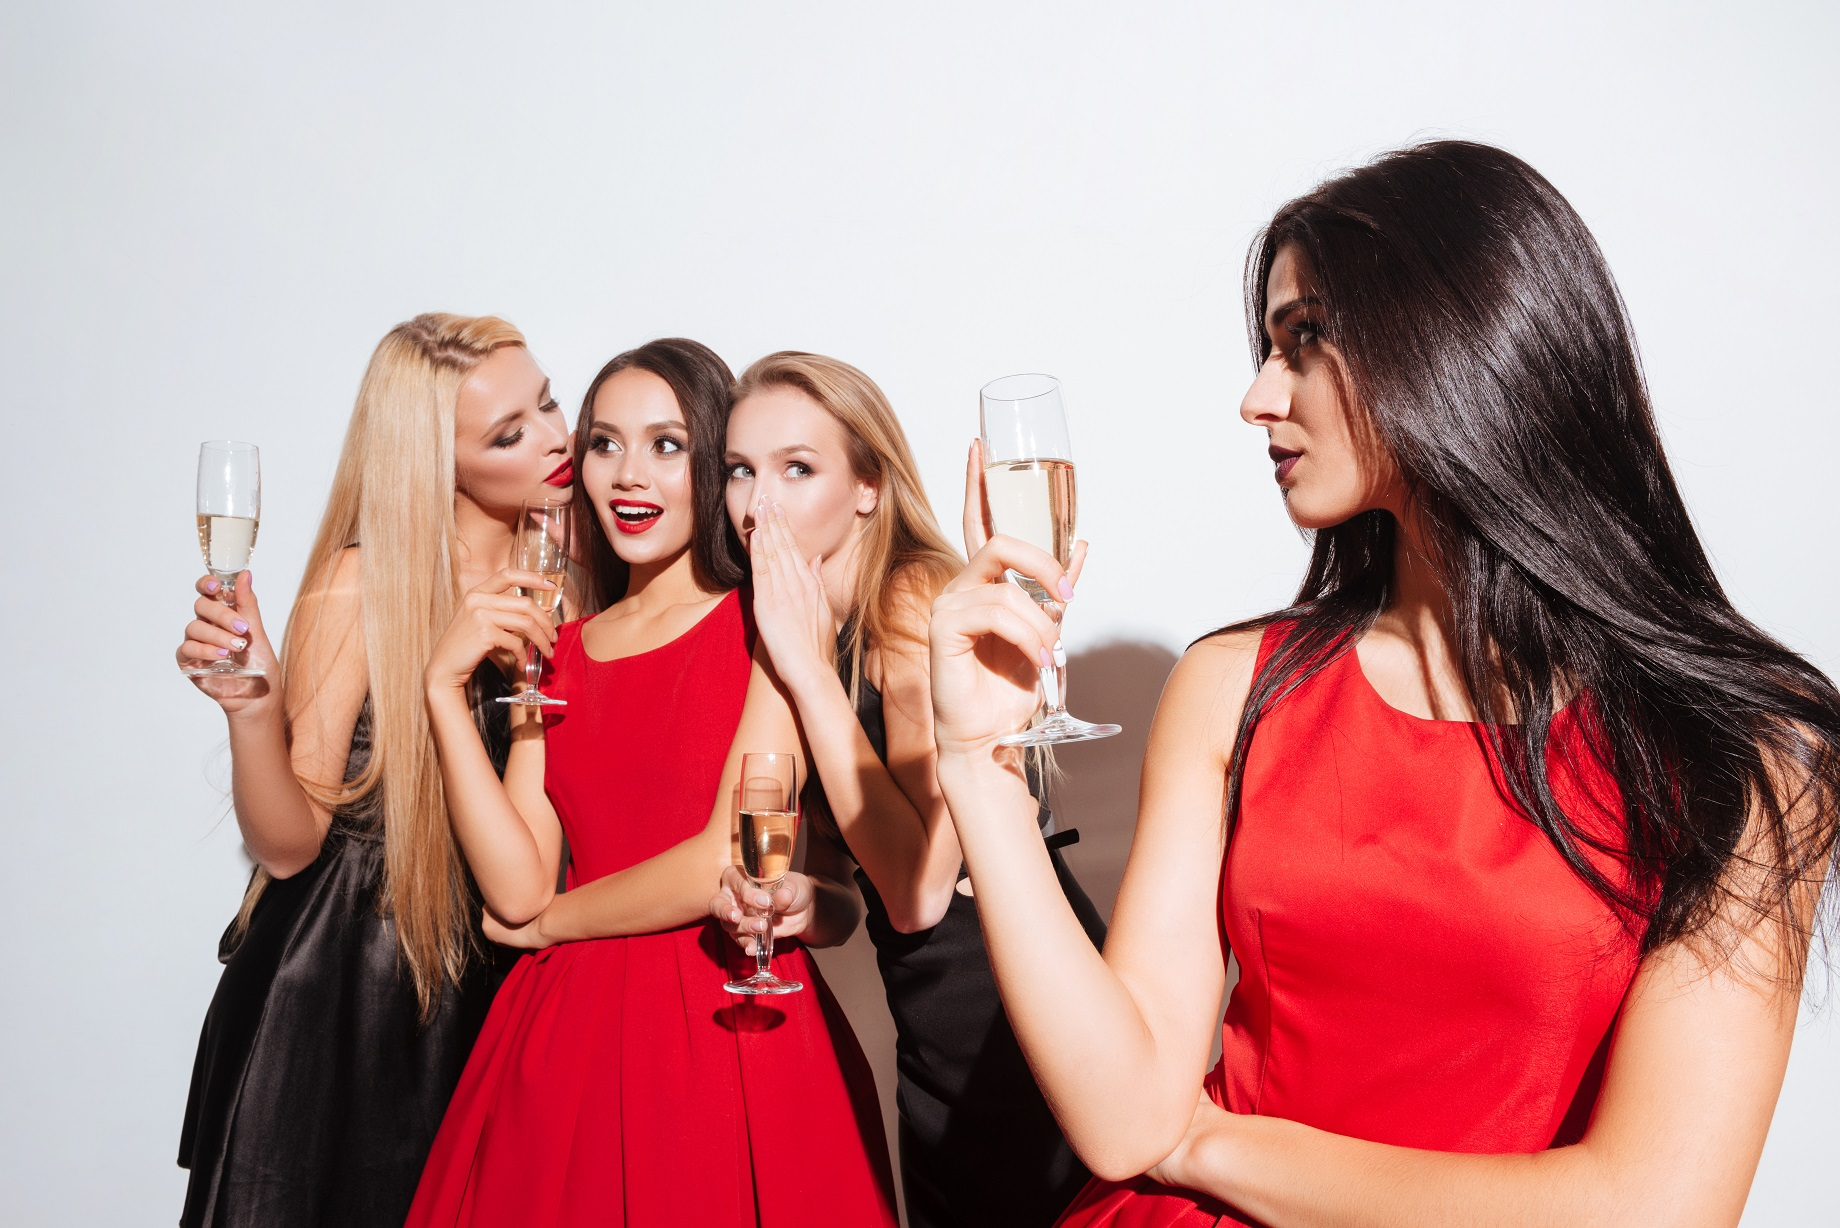 réussite réussite Est-ce de l'arrogance de parler de sa réussite ? graphicstock smiling young women drinking champagne and gossiping on the party over white background rdT3lNP3l